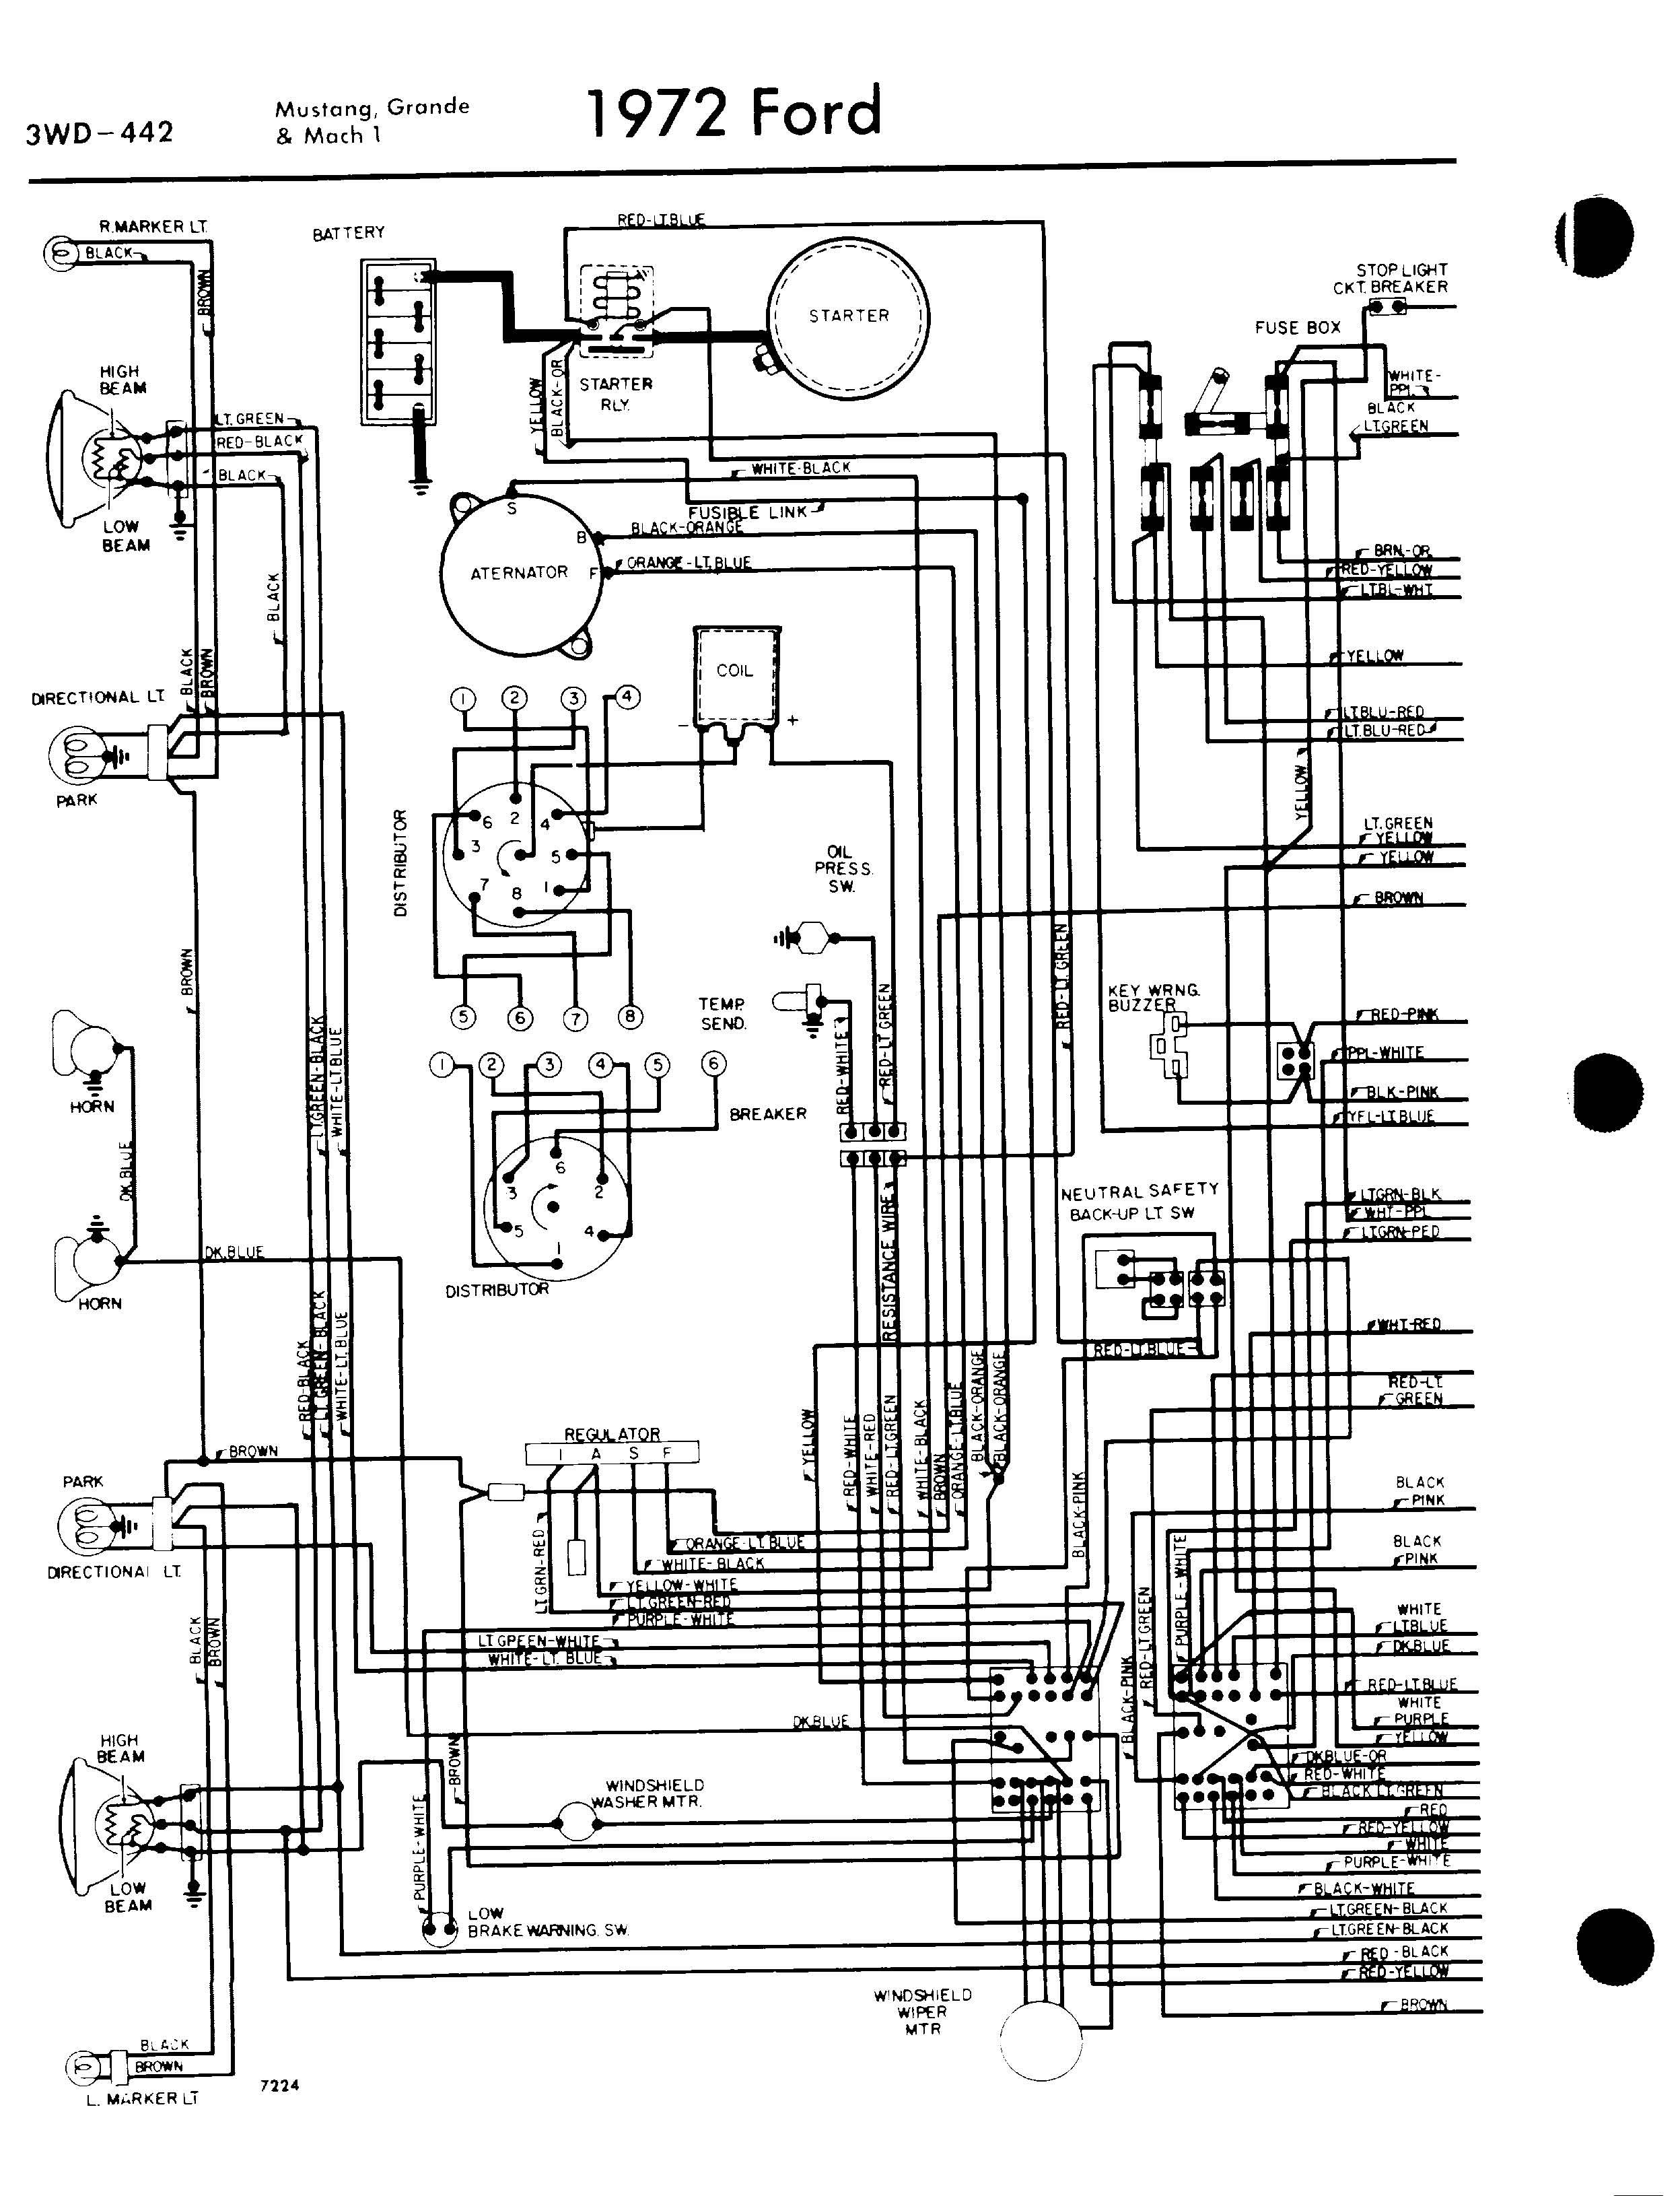 Magnificent Harness Diagram Ford Mustang Ignition Switch Wiring Diagram 1973 Wiring Cloud Xempagosophoxytasticioscodnessplanboapumohammedshrineorg